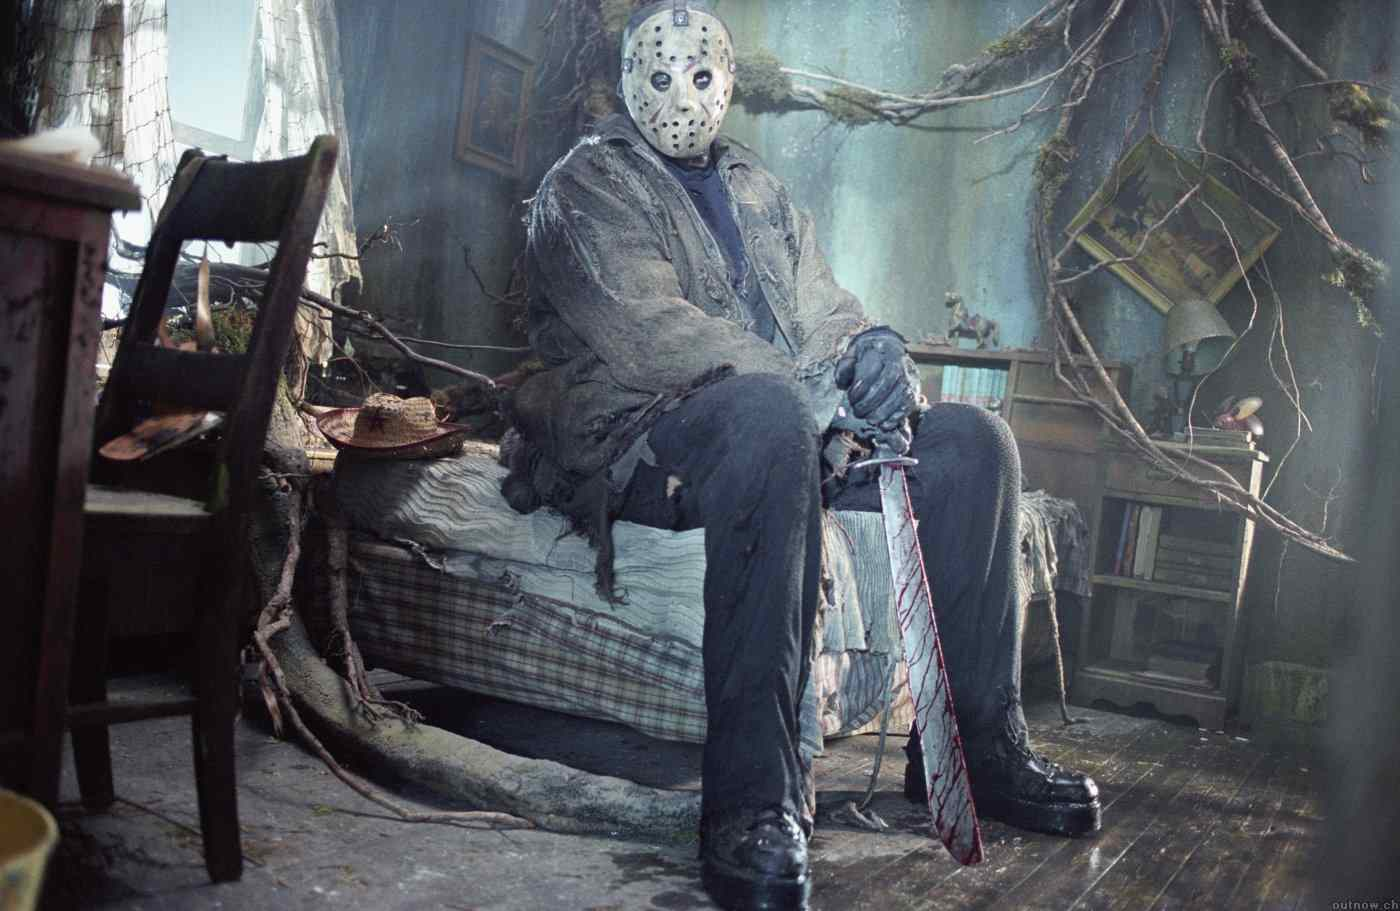 Jason Voorhees enjoys a peaceful moment